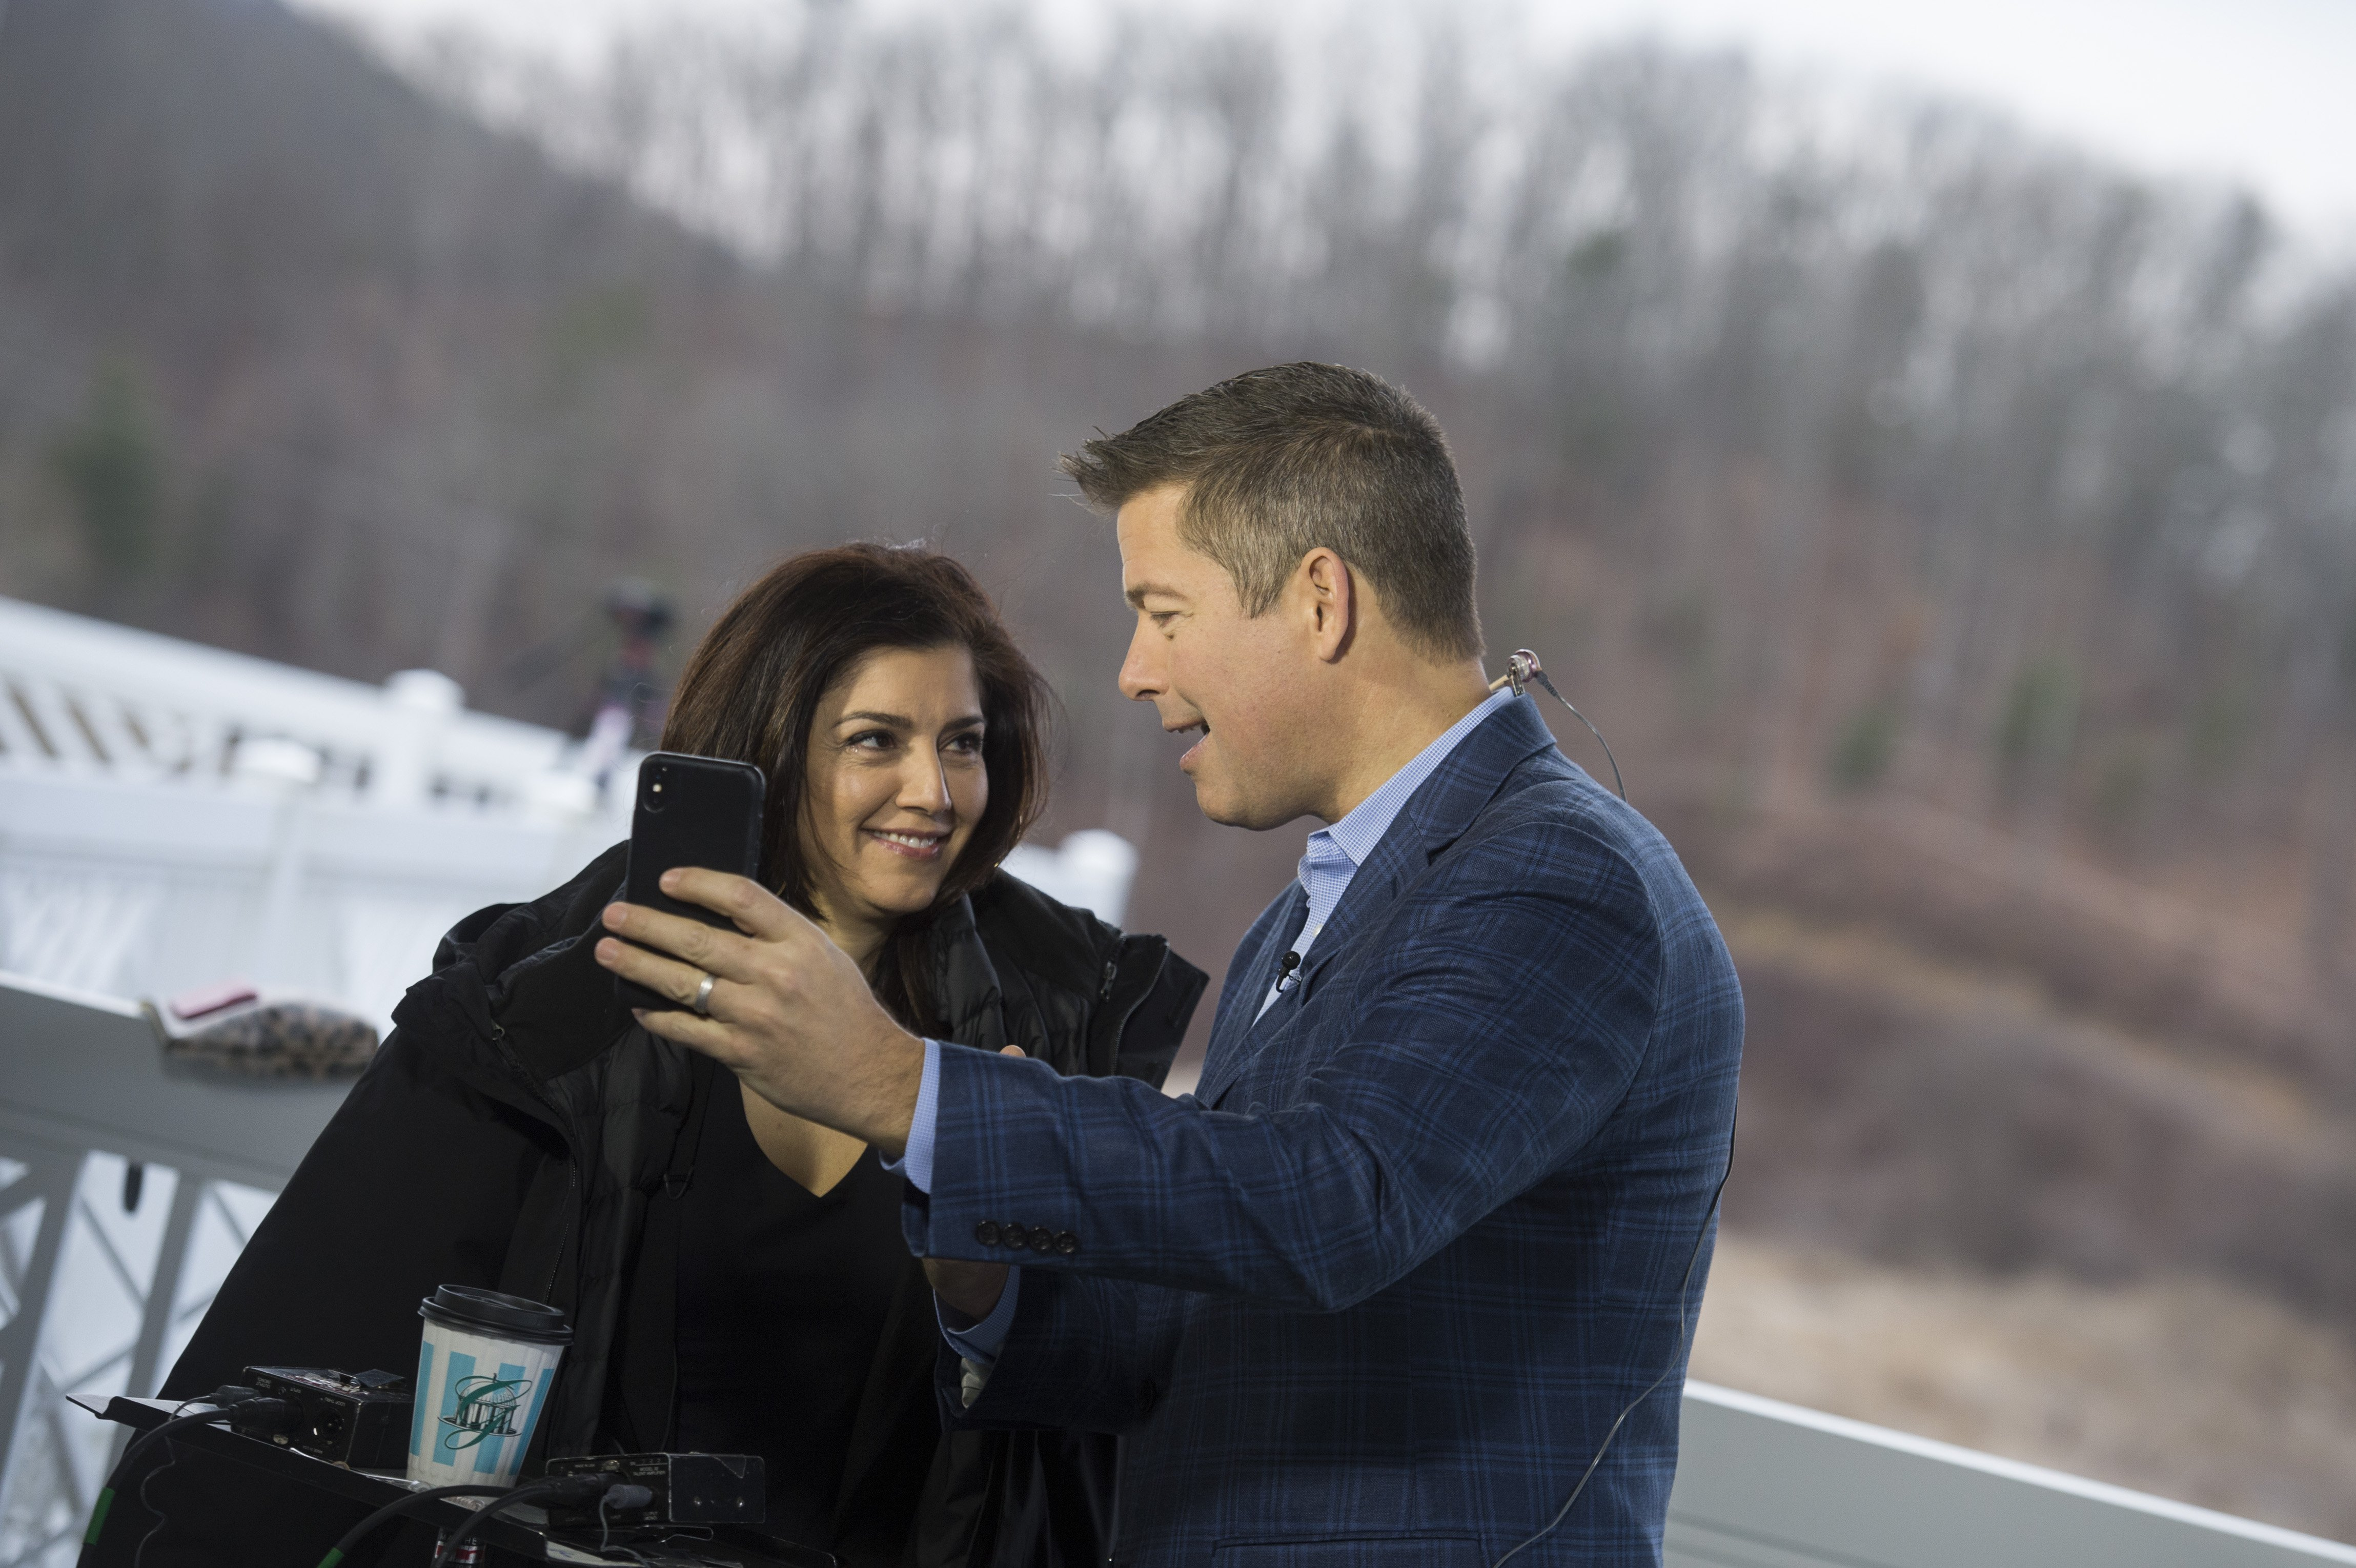 Rep. Sean Duffy, R-Wis., and his wife Rachel Campos-Duffy film a video at the media center during the House and Senate Republican retreat on February 1, 2018 |Photo: Getty Images